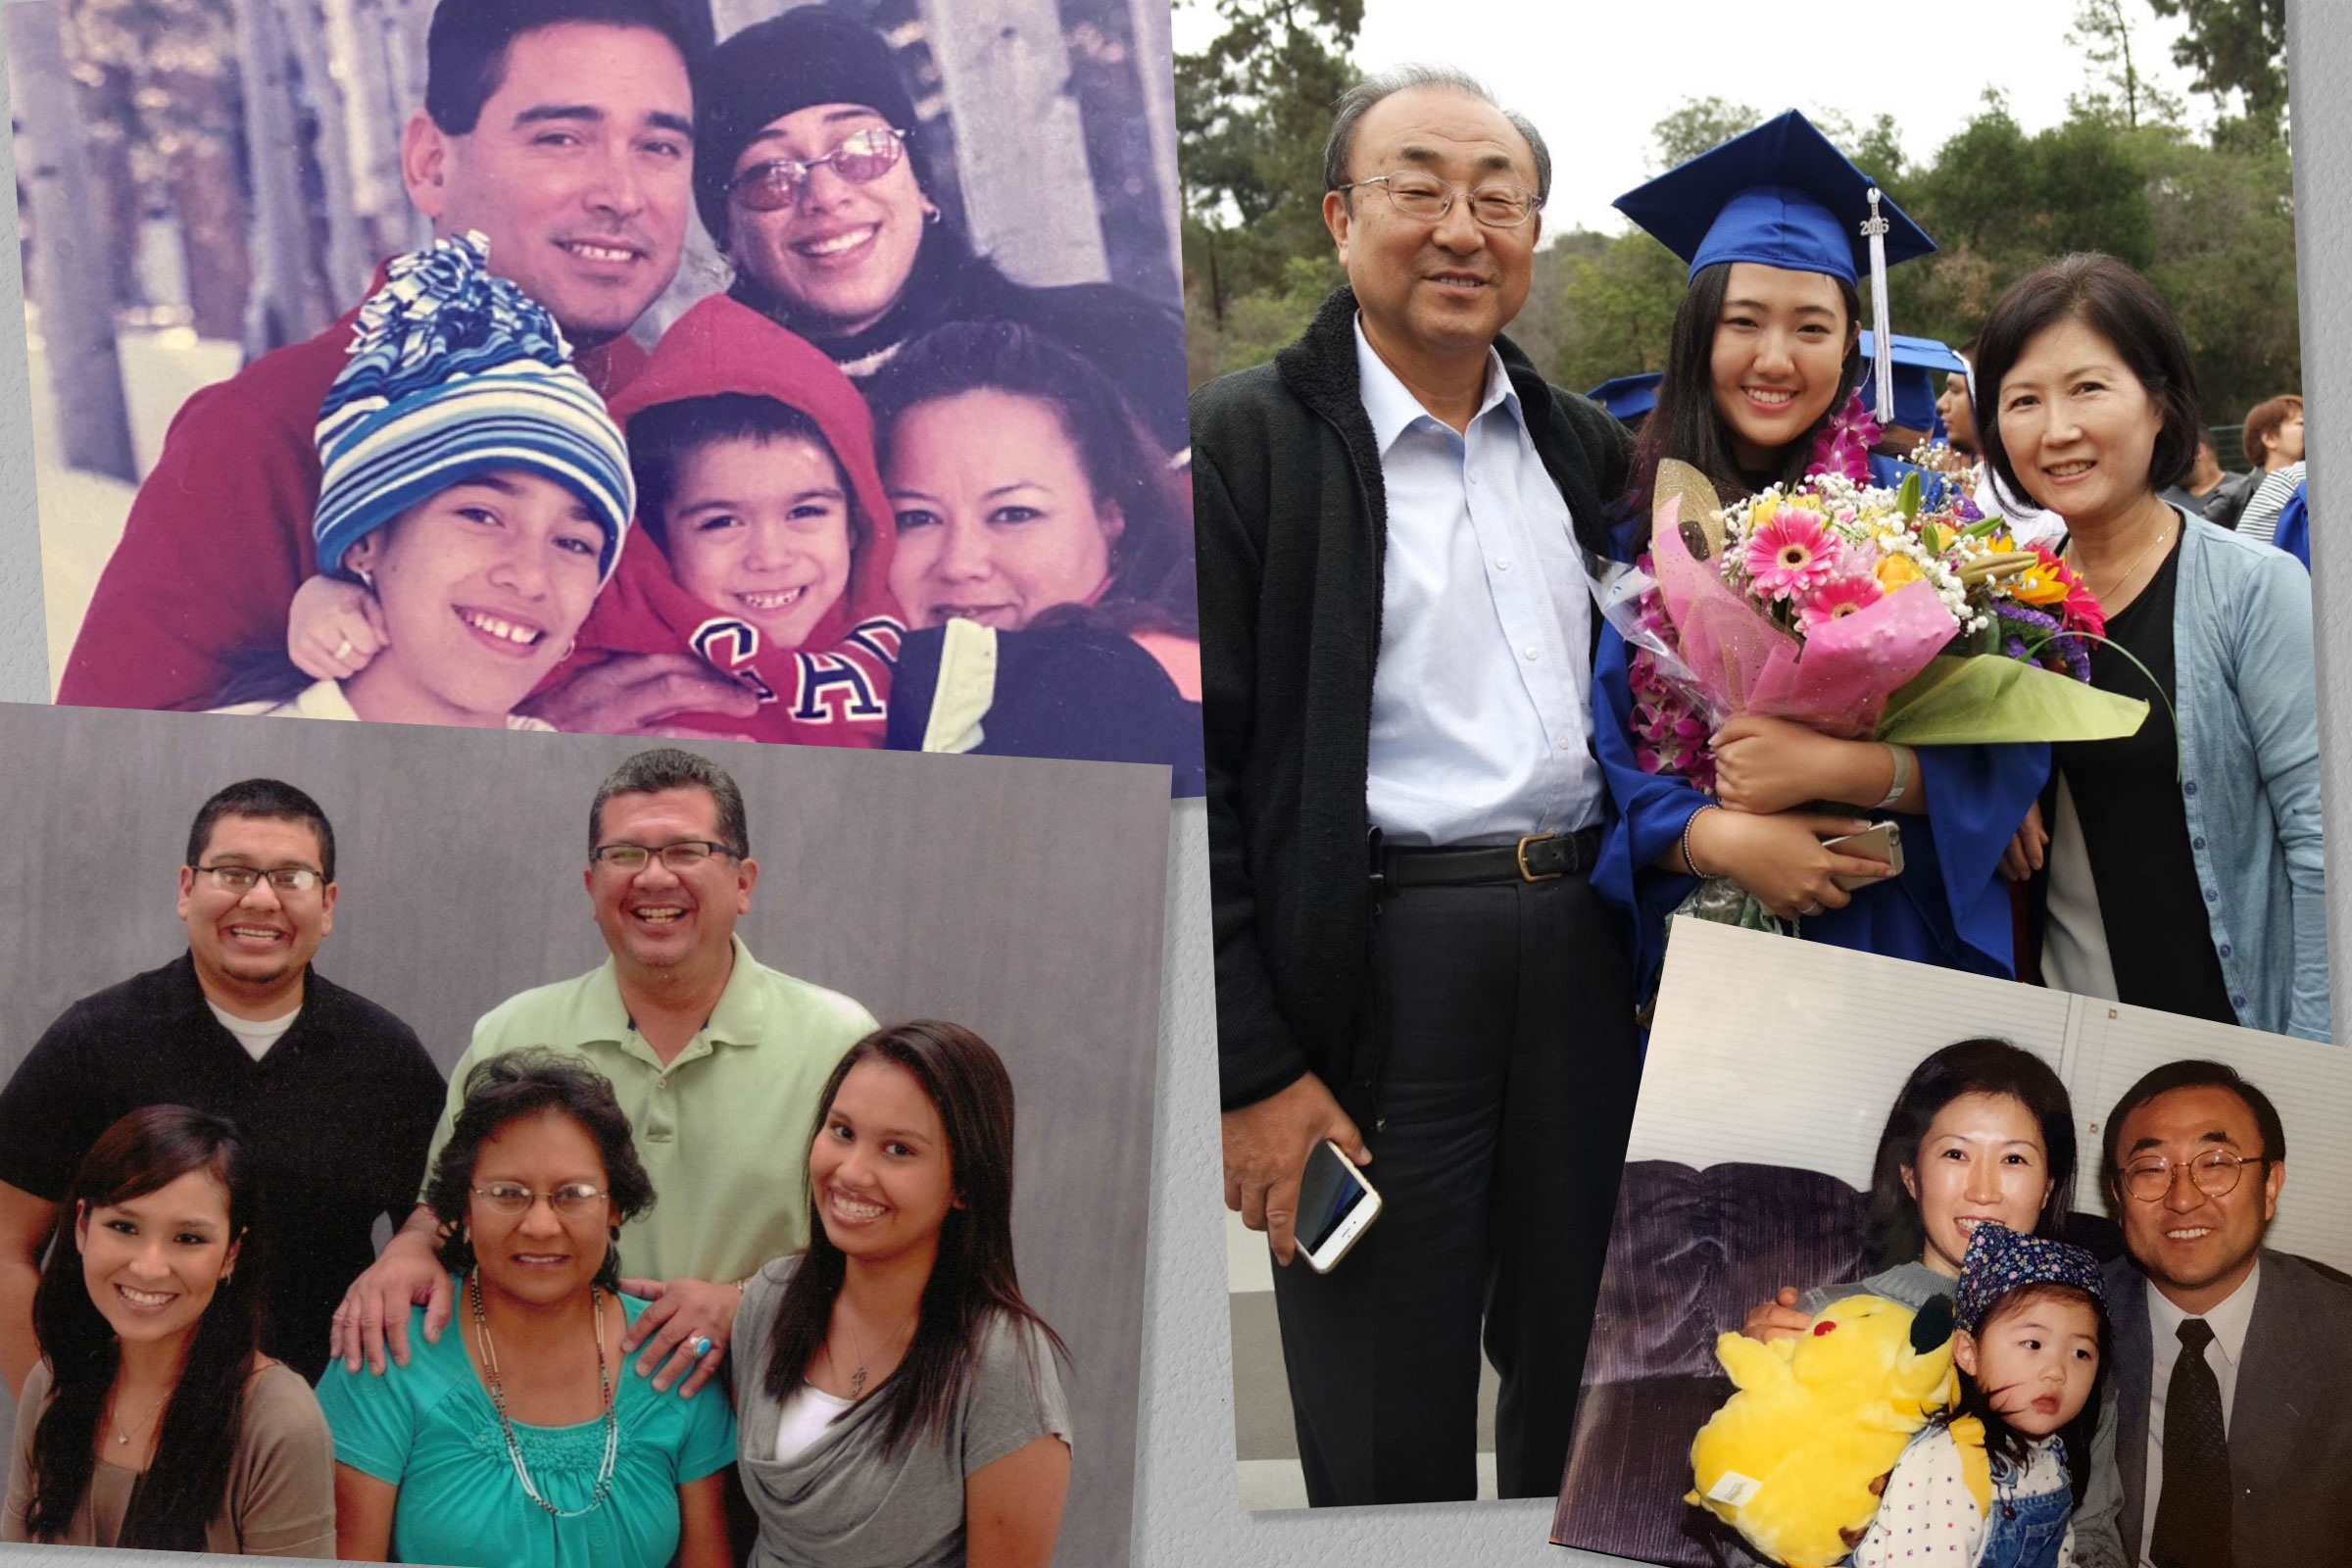 Clockwise from top left: The Hinojosa family; Hannah Hae In Kim and her parents (2); The Kellogg family